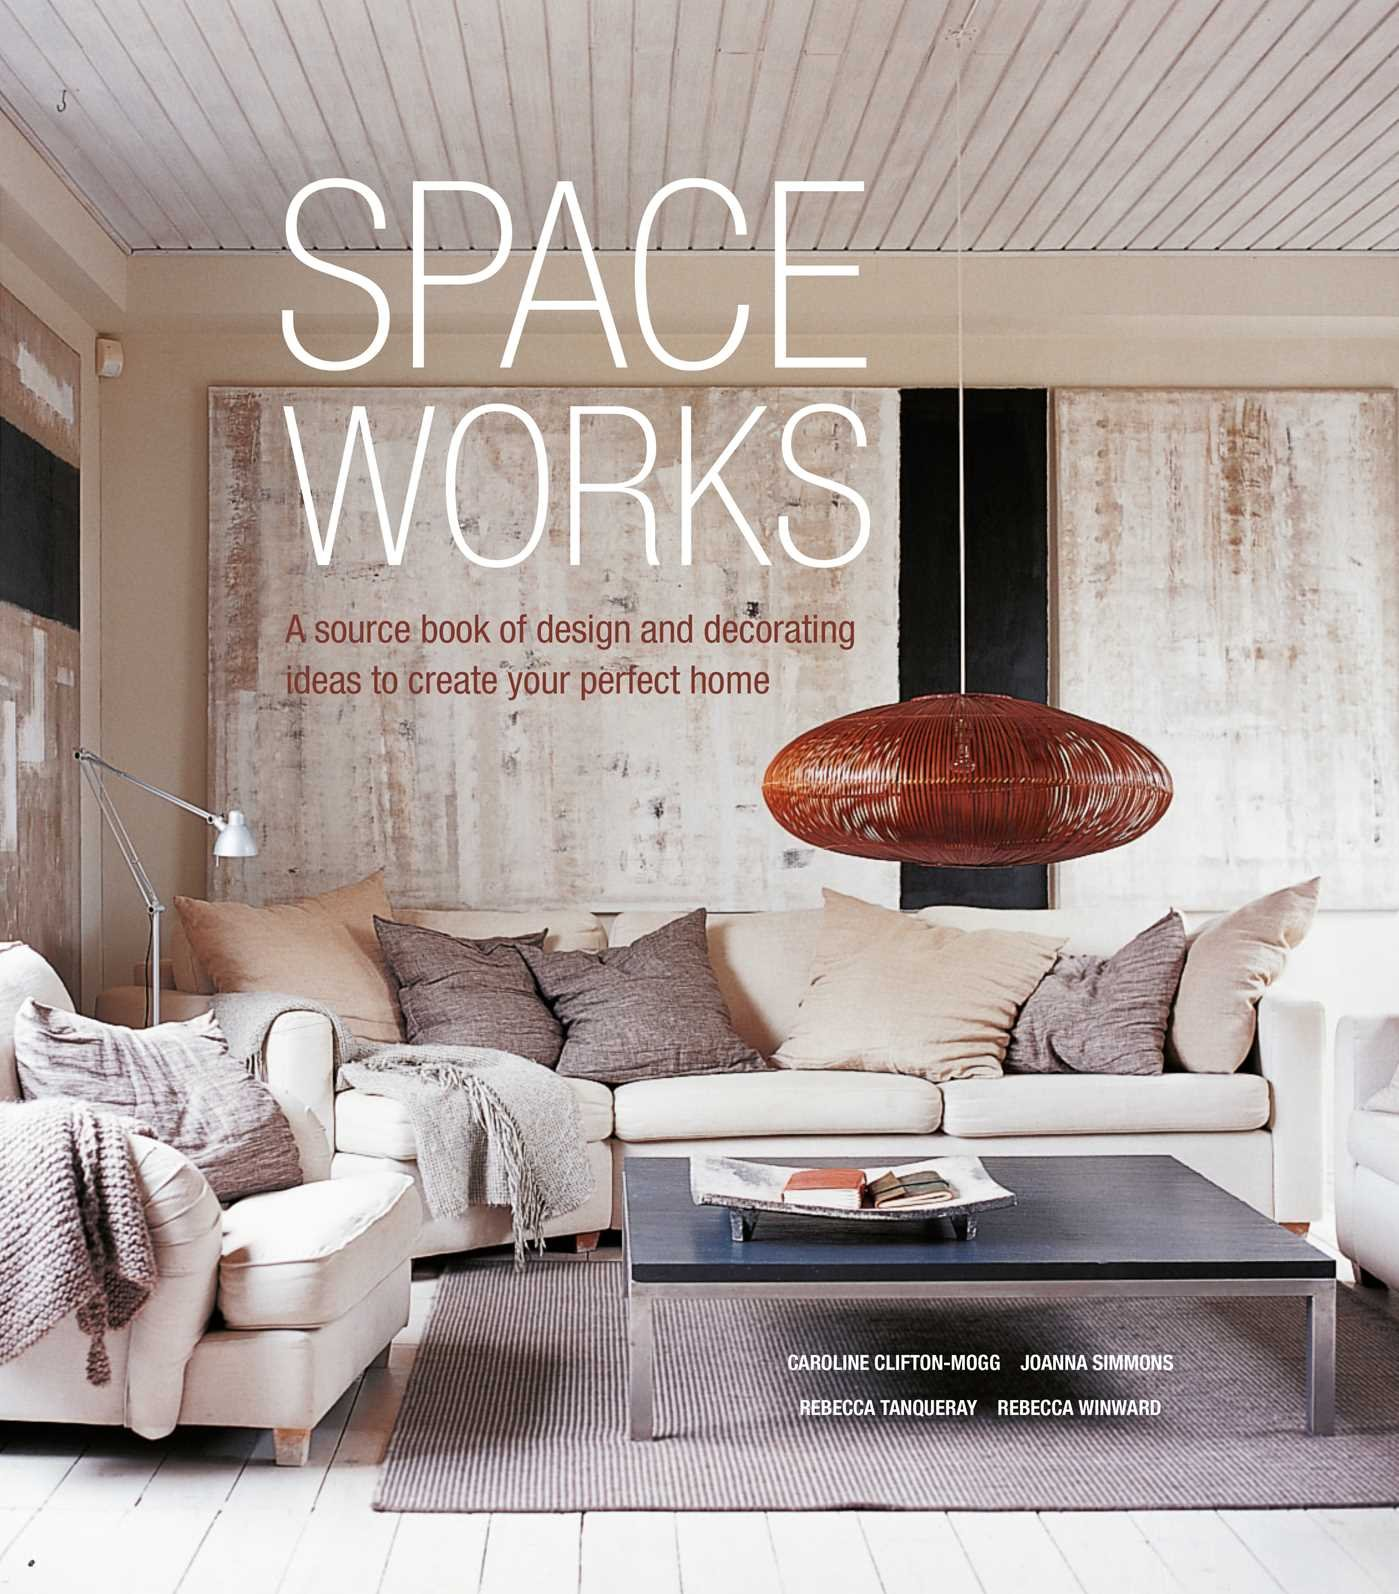 Space Works A source book of design and decorating ideas to